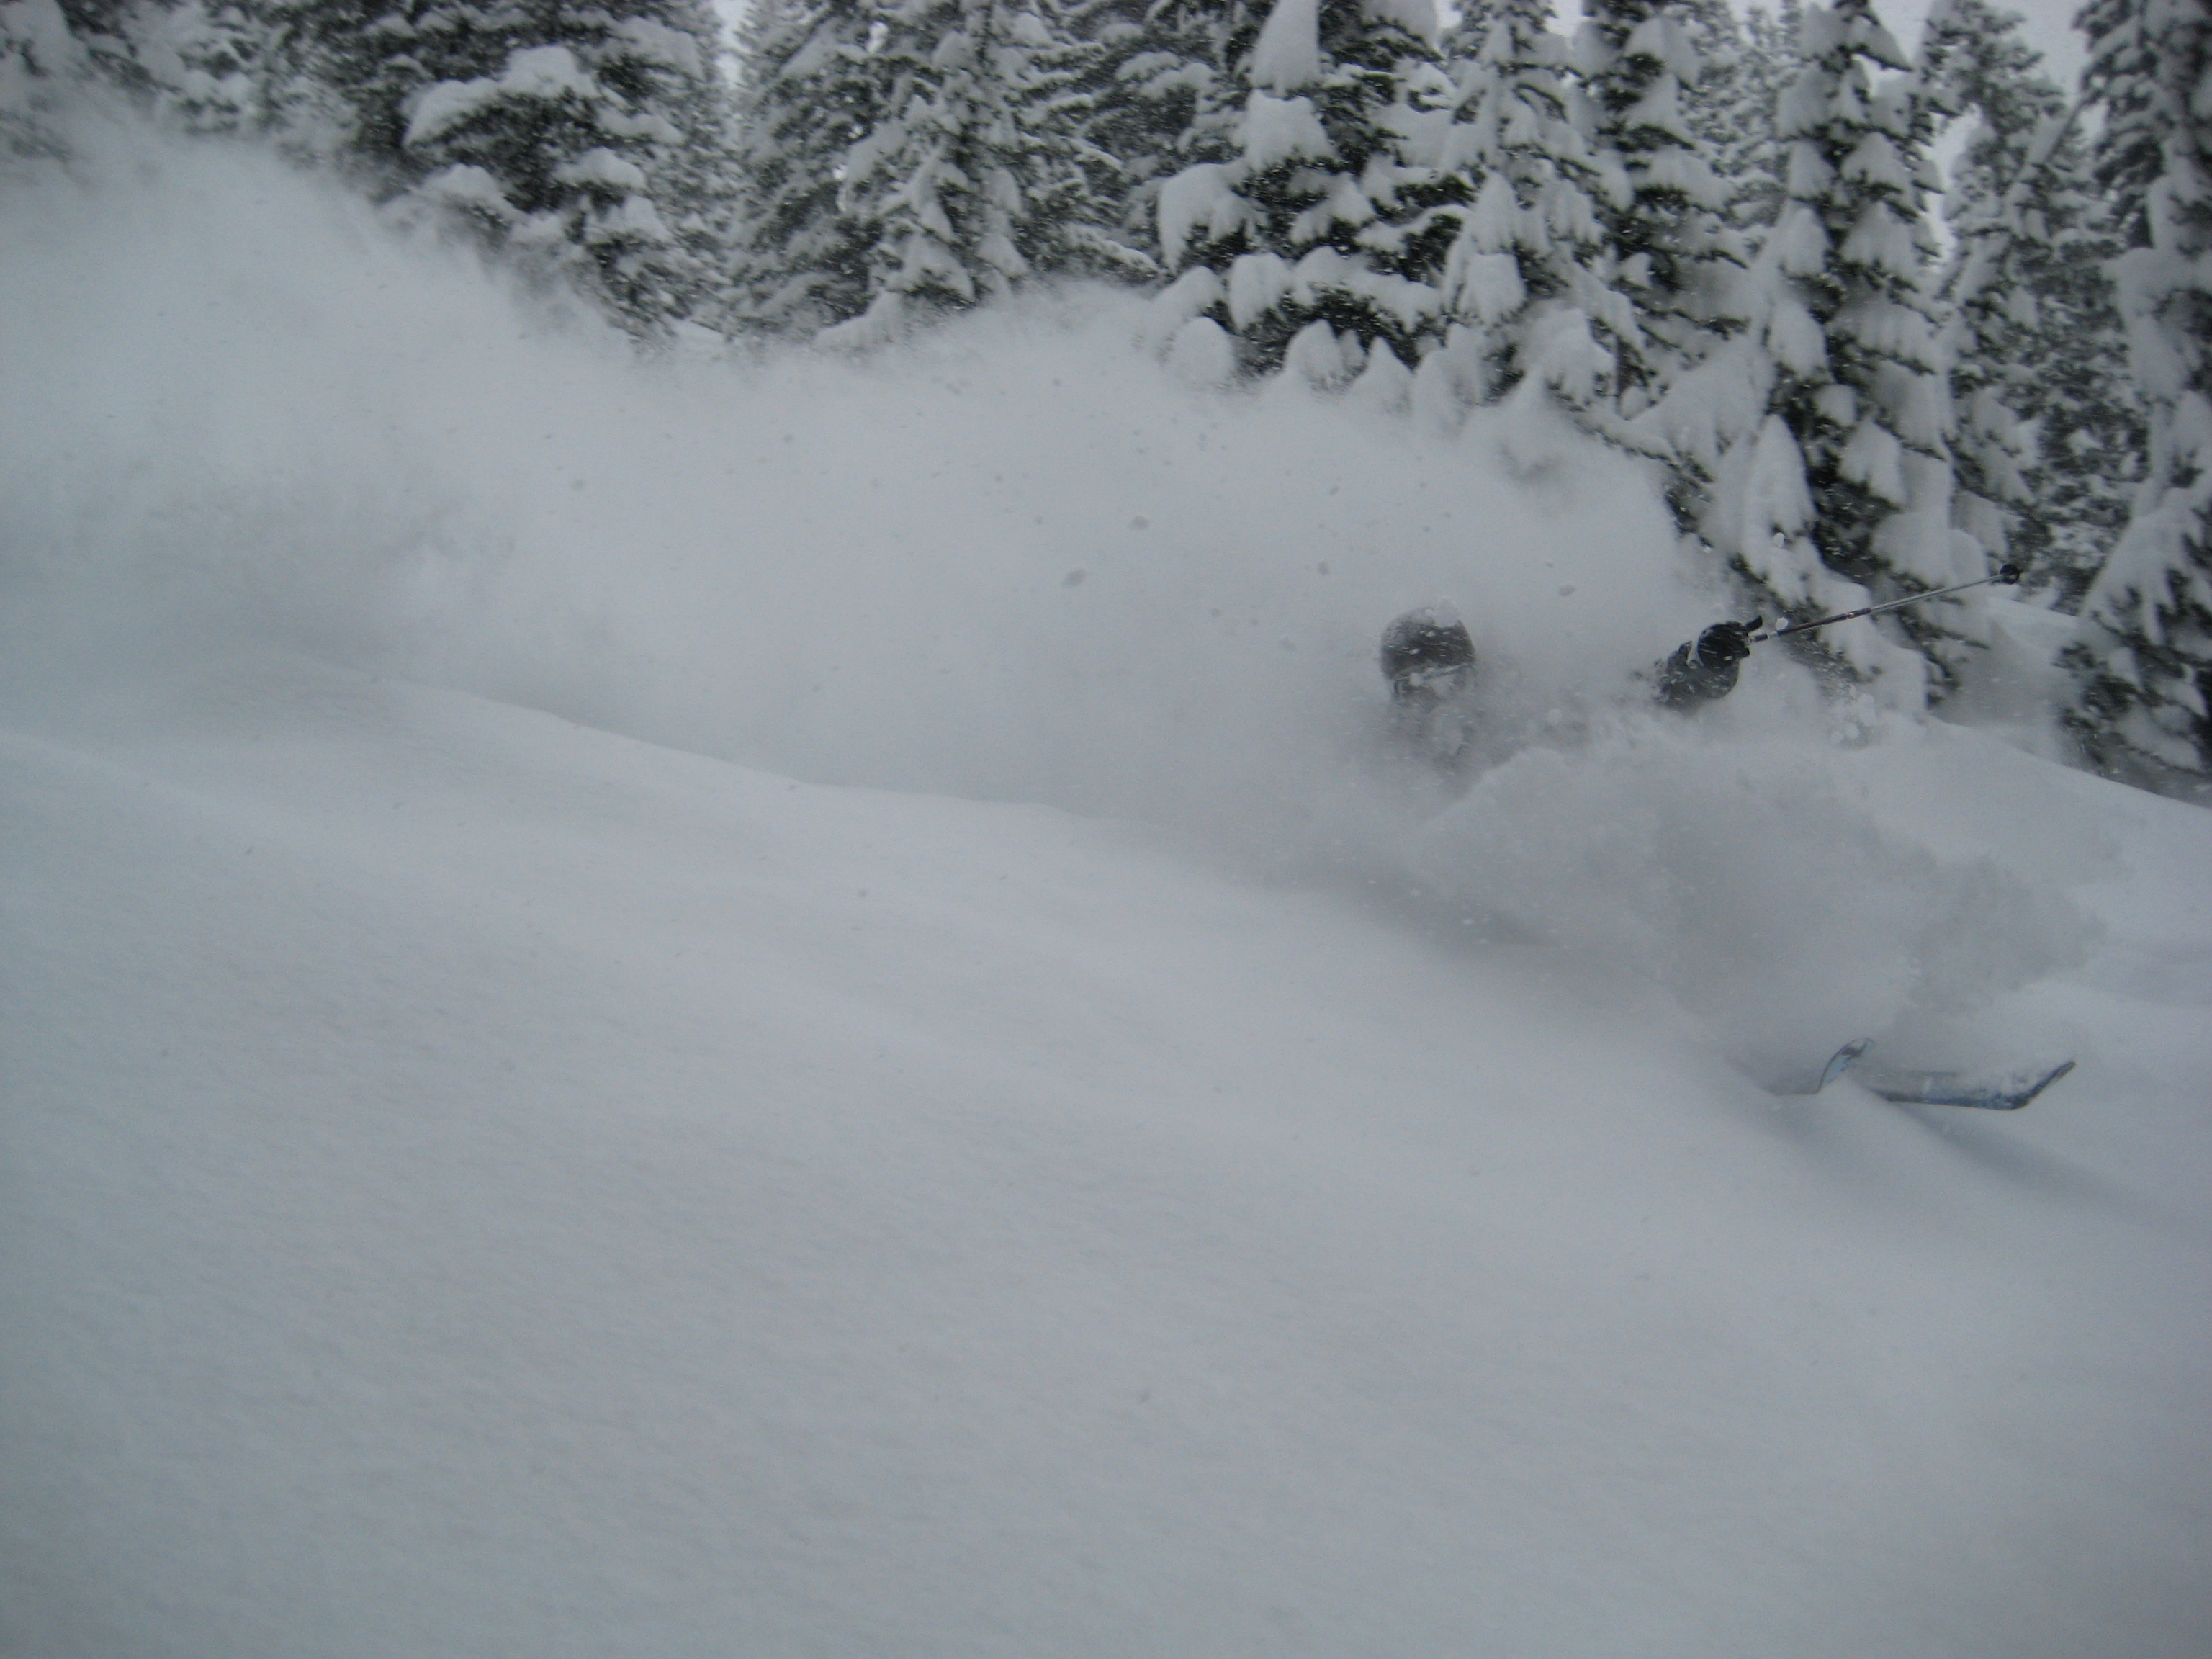 Skiing the pow